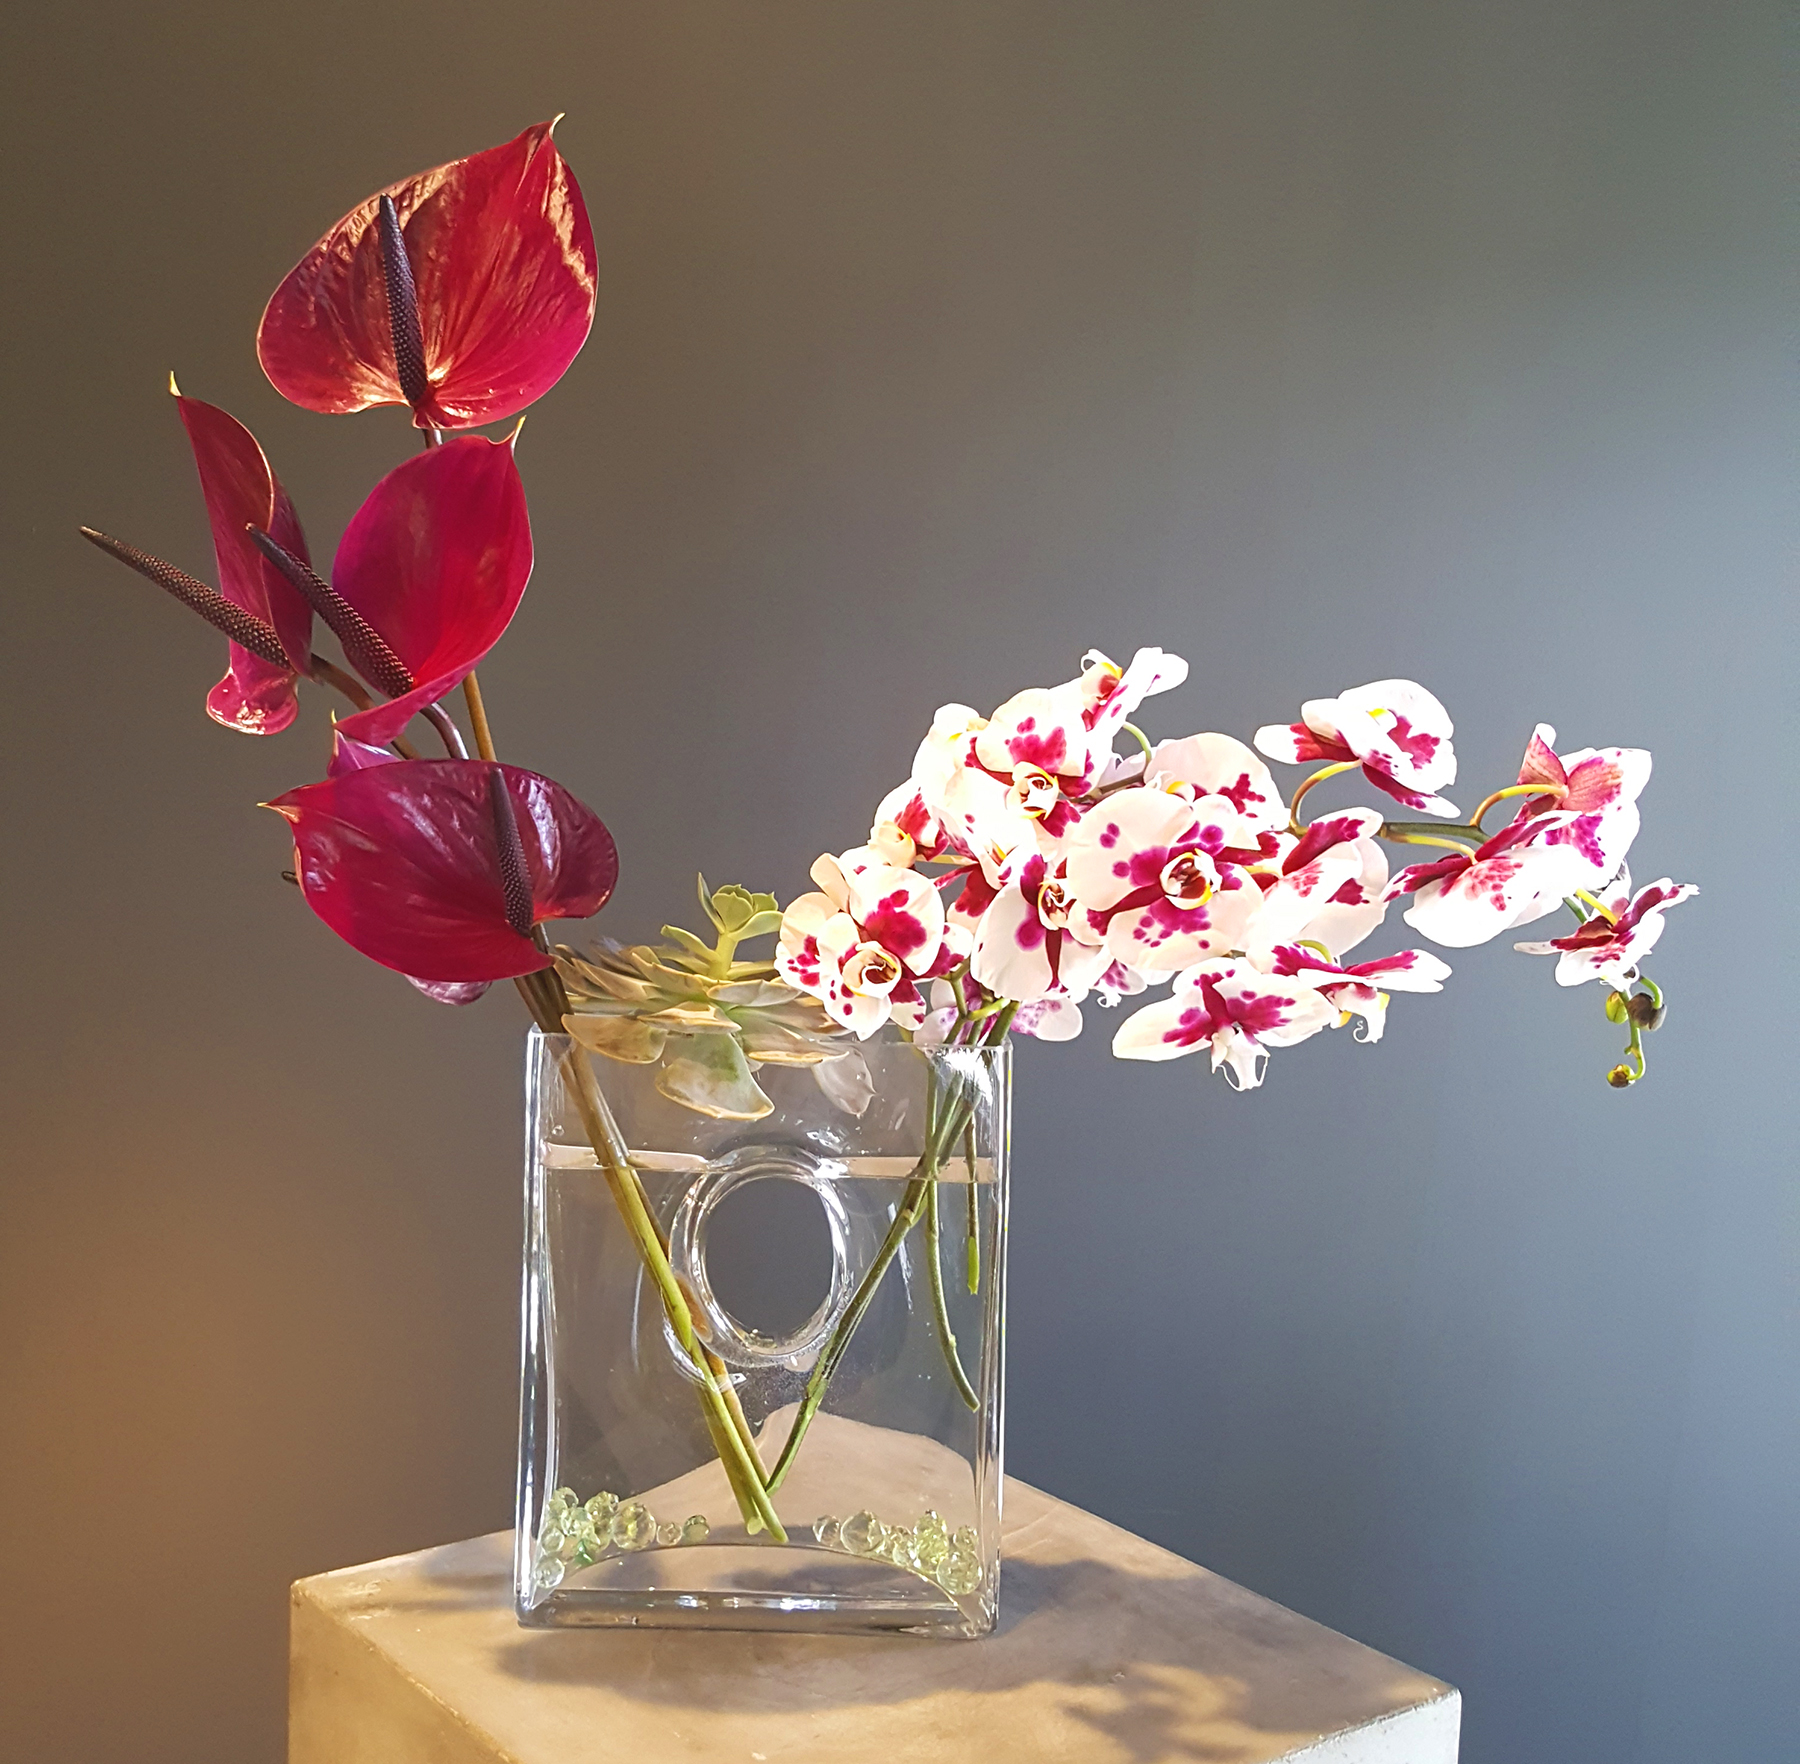 Simple red and white orchids in simple glass vase